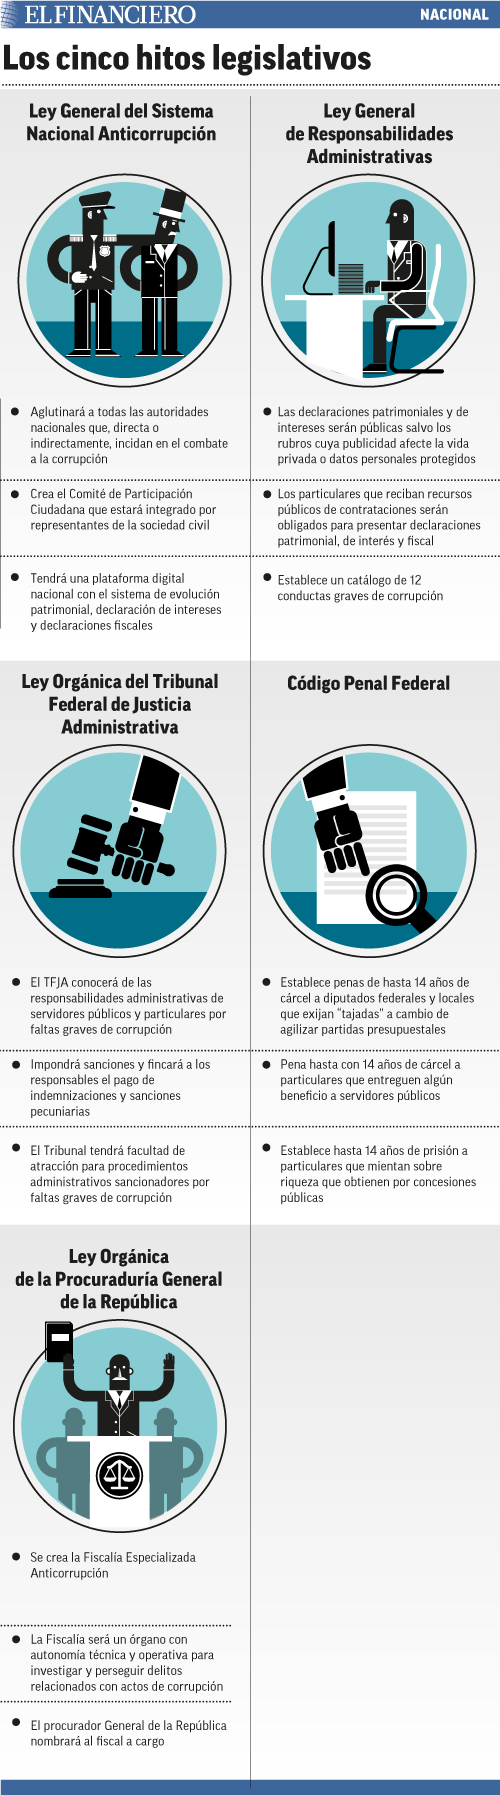 los_cinco_hitos_legislativos